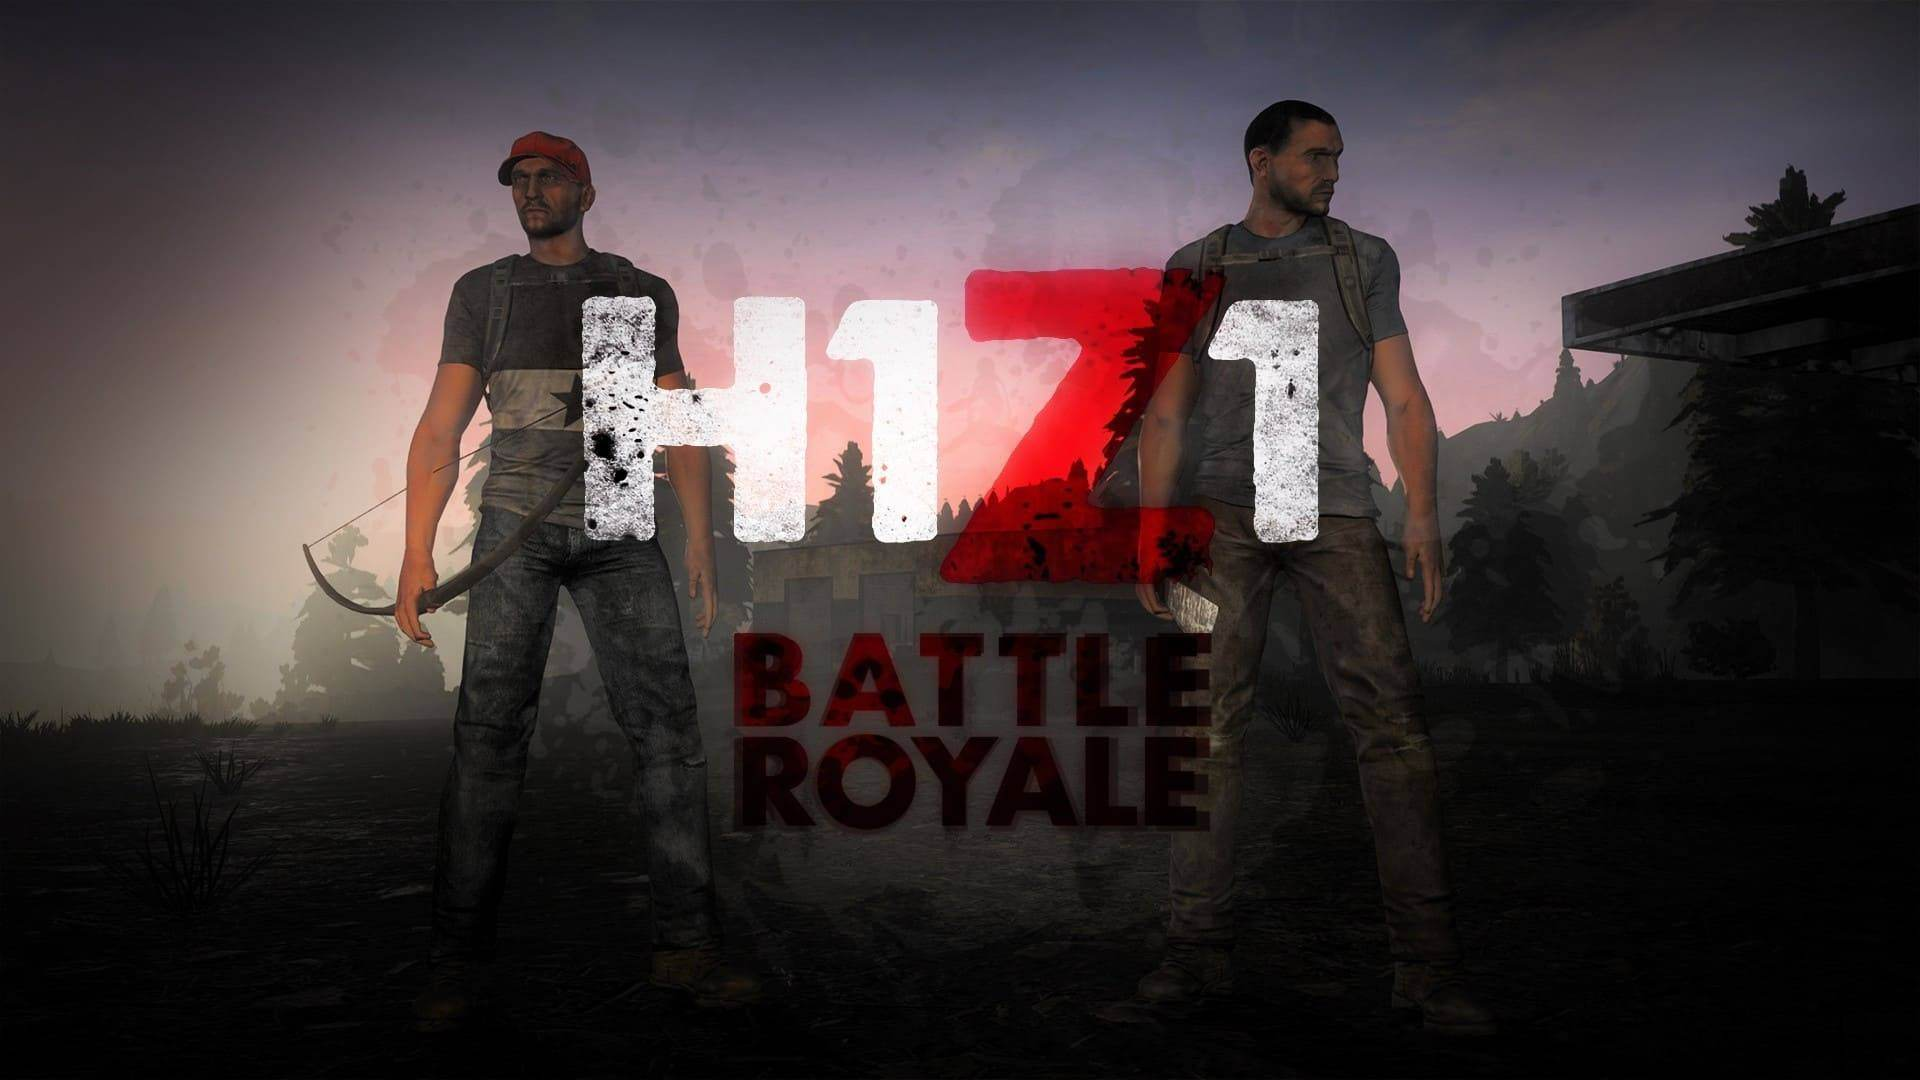 H1z1 Free 260204 Hd Wallpaper Backgrounds Download